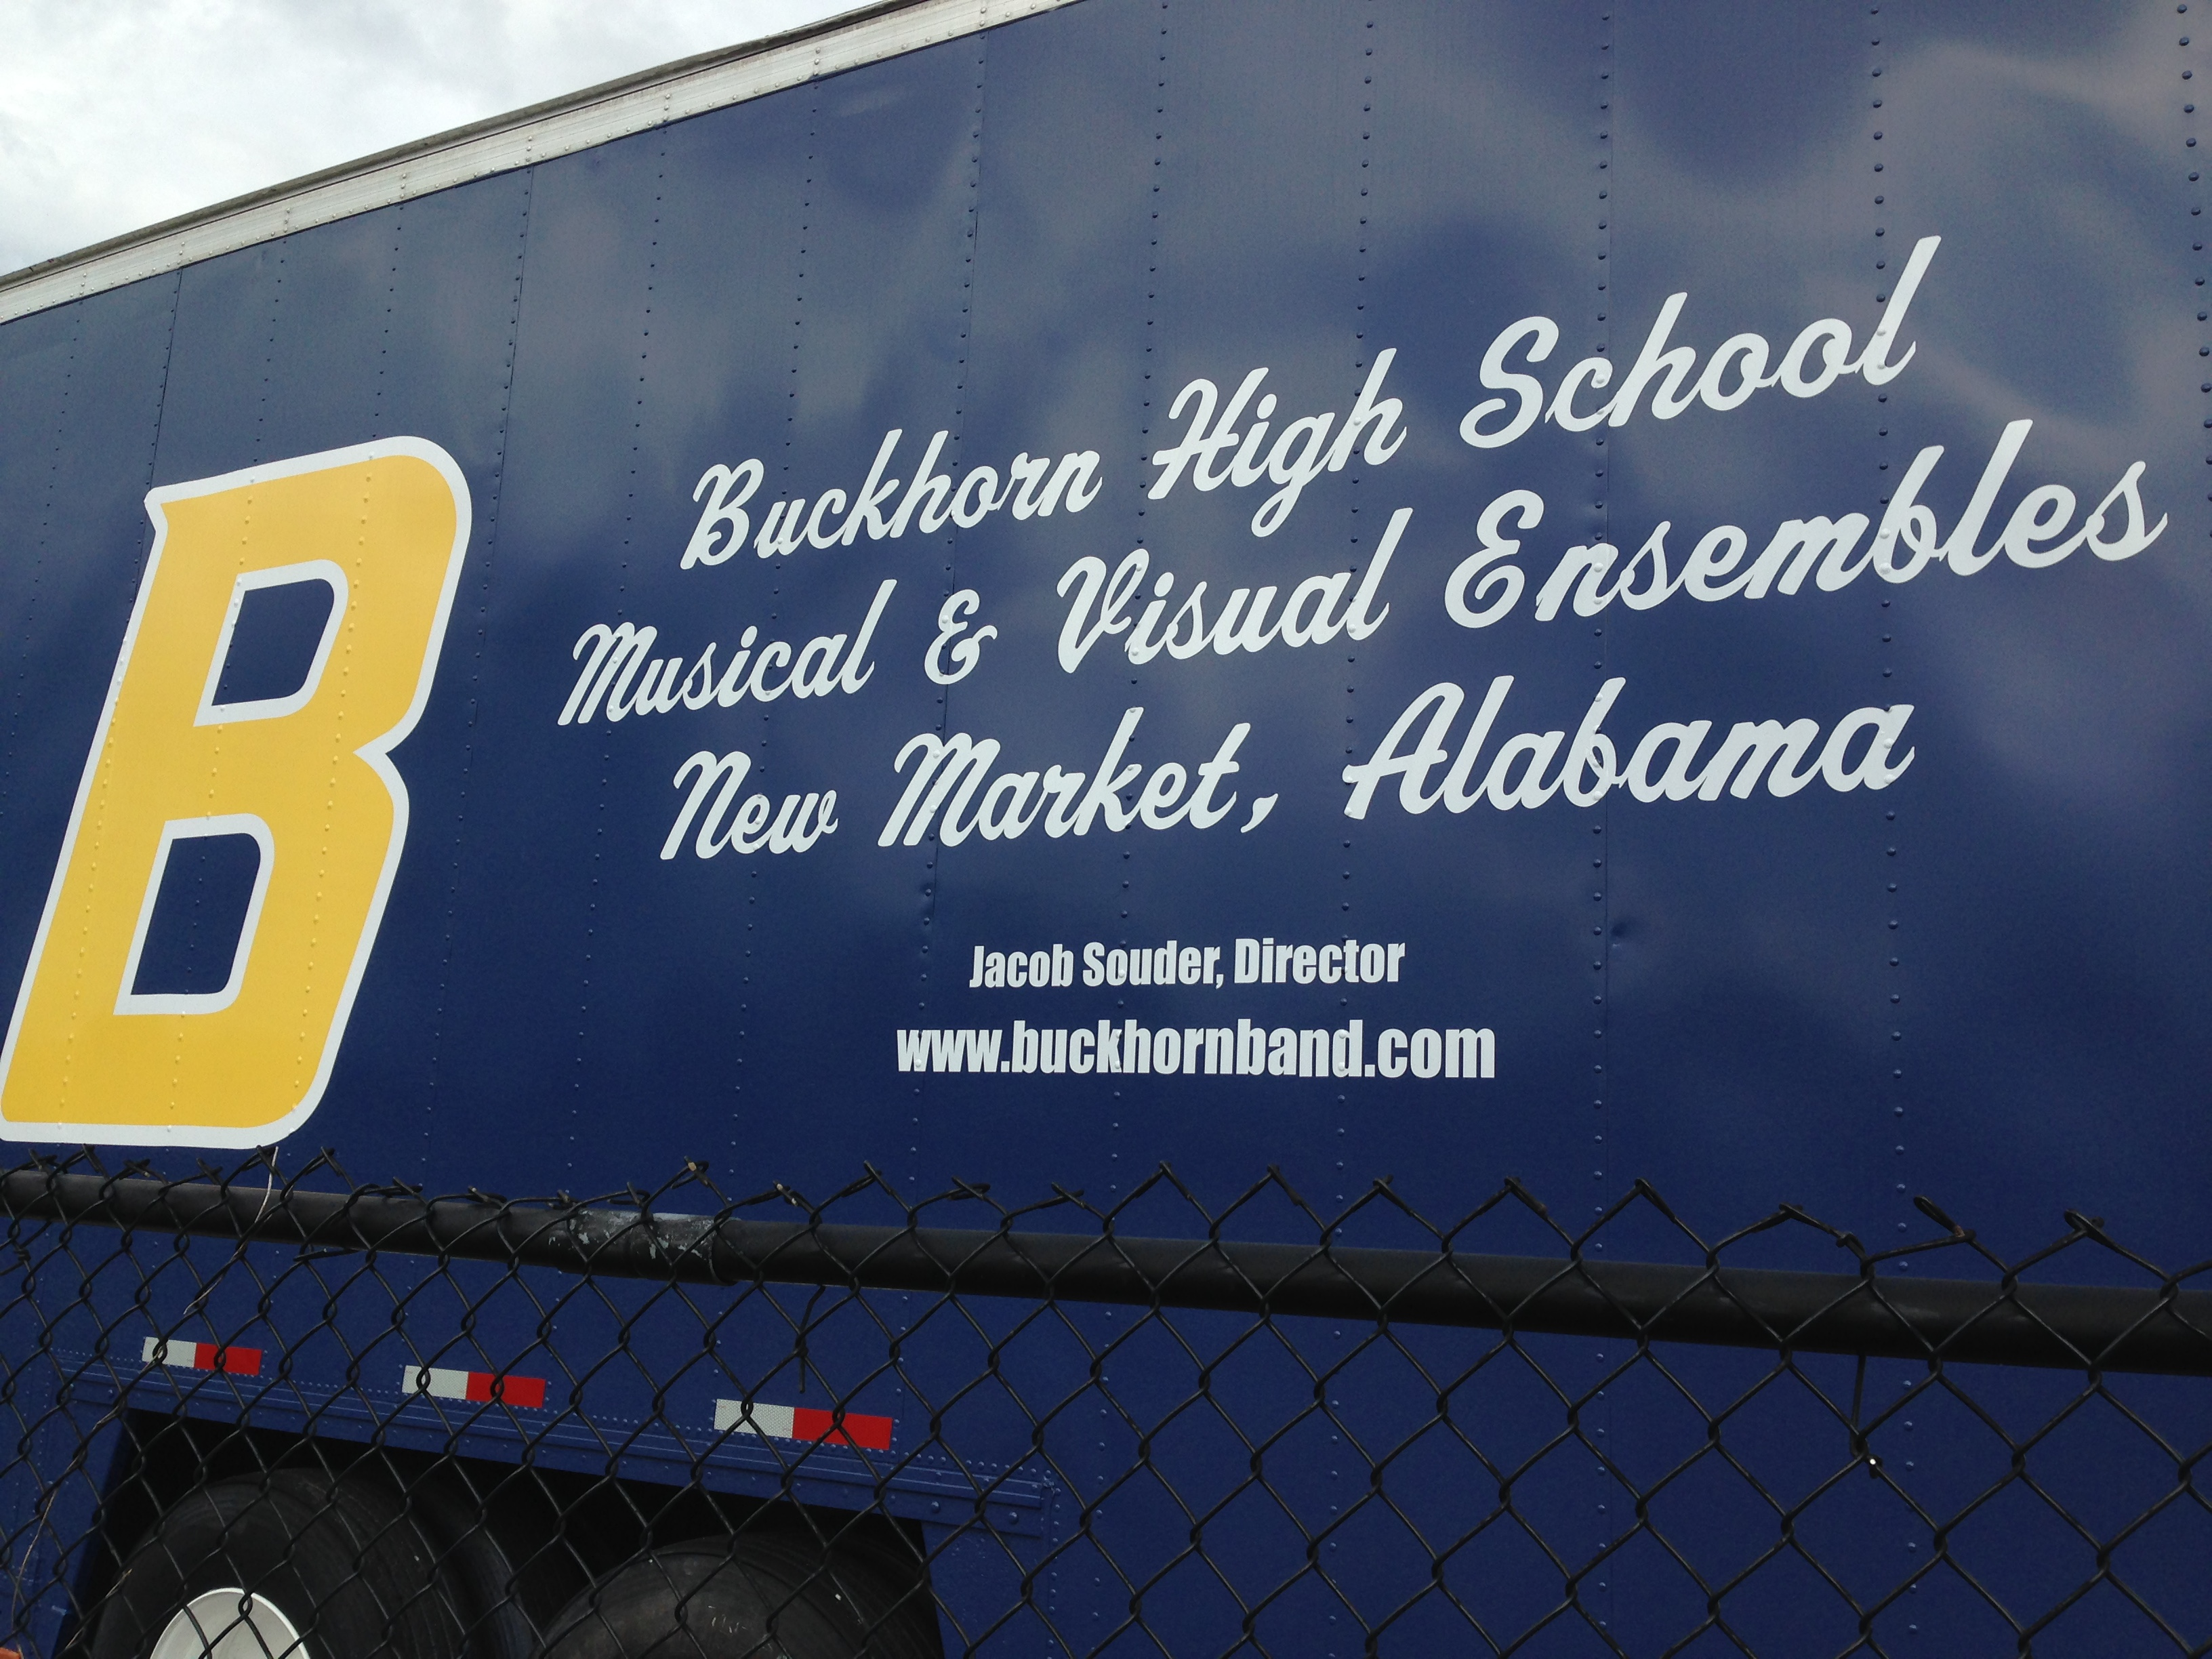 Buckhorn Band Trailer